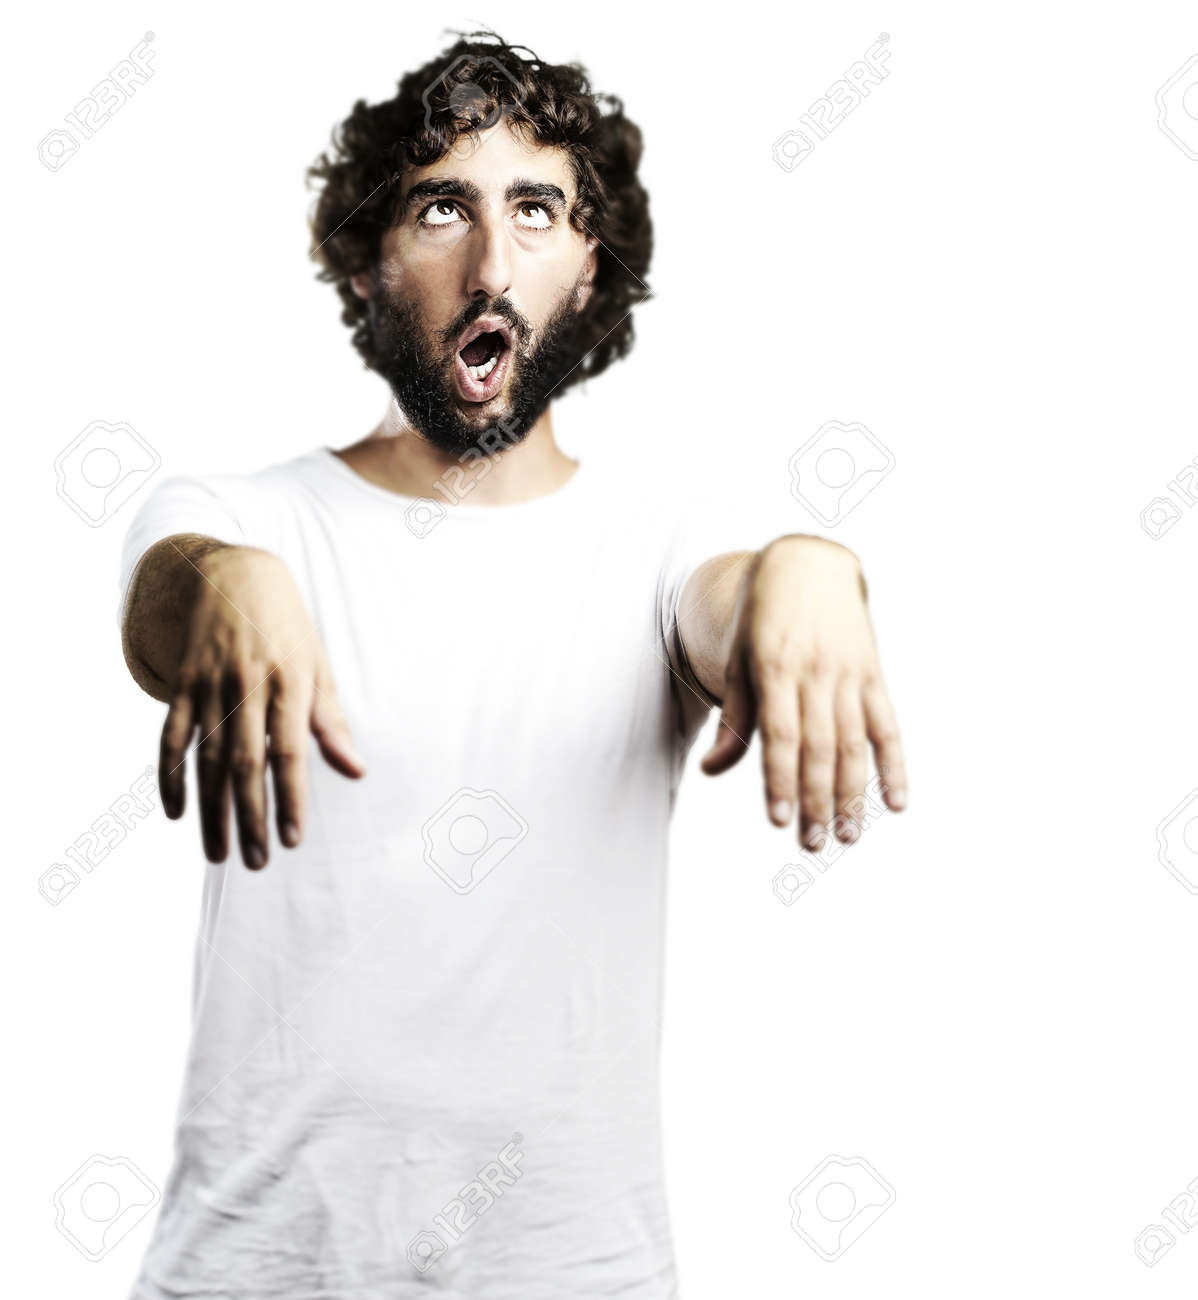 young man imitating a zombie against a white background Stock Photo - 10383797